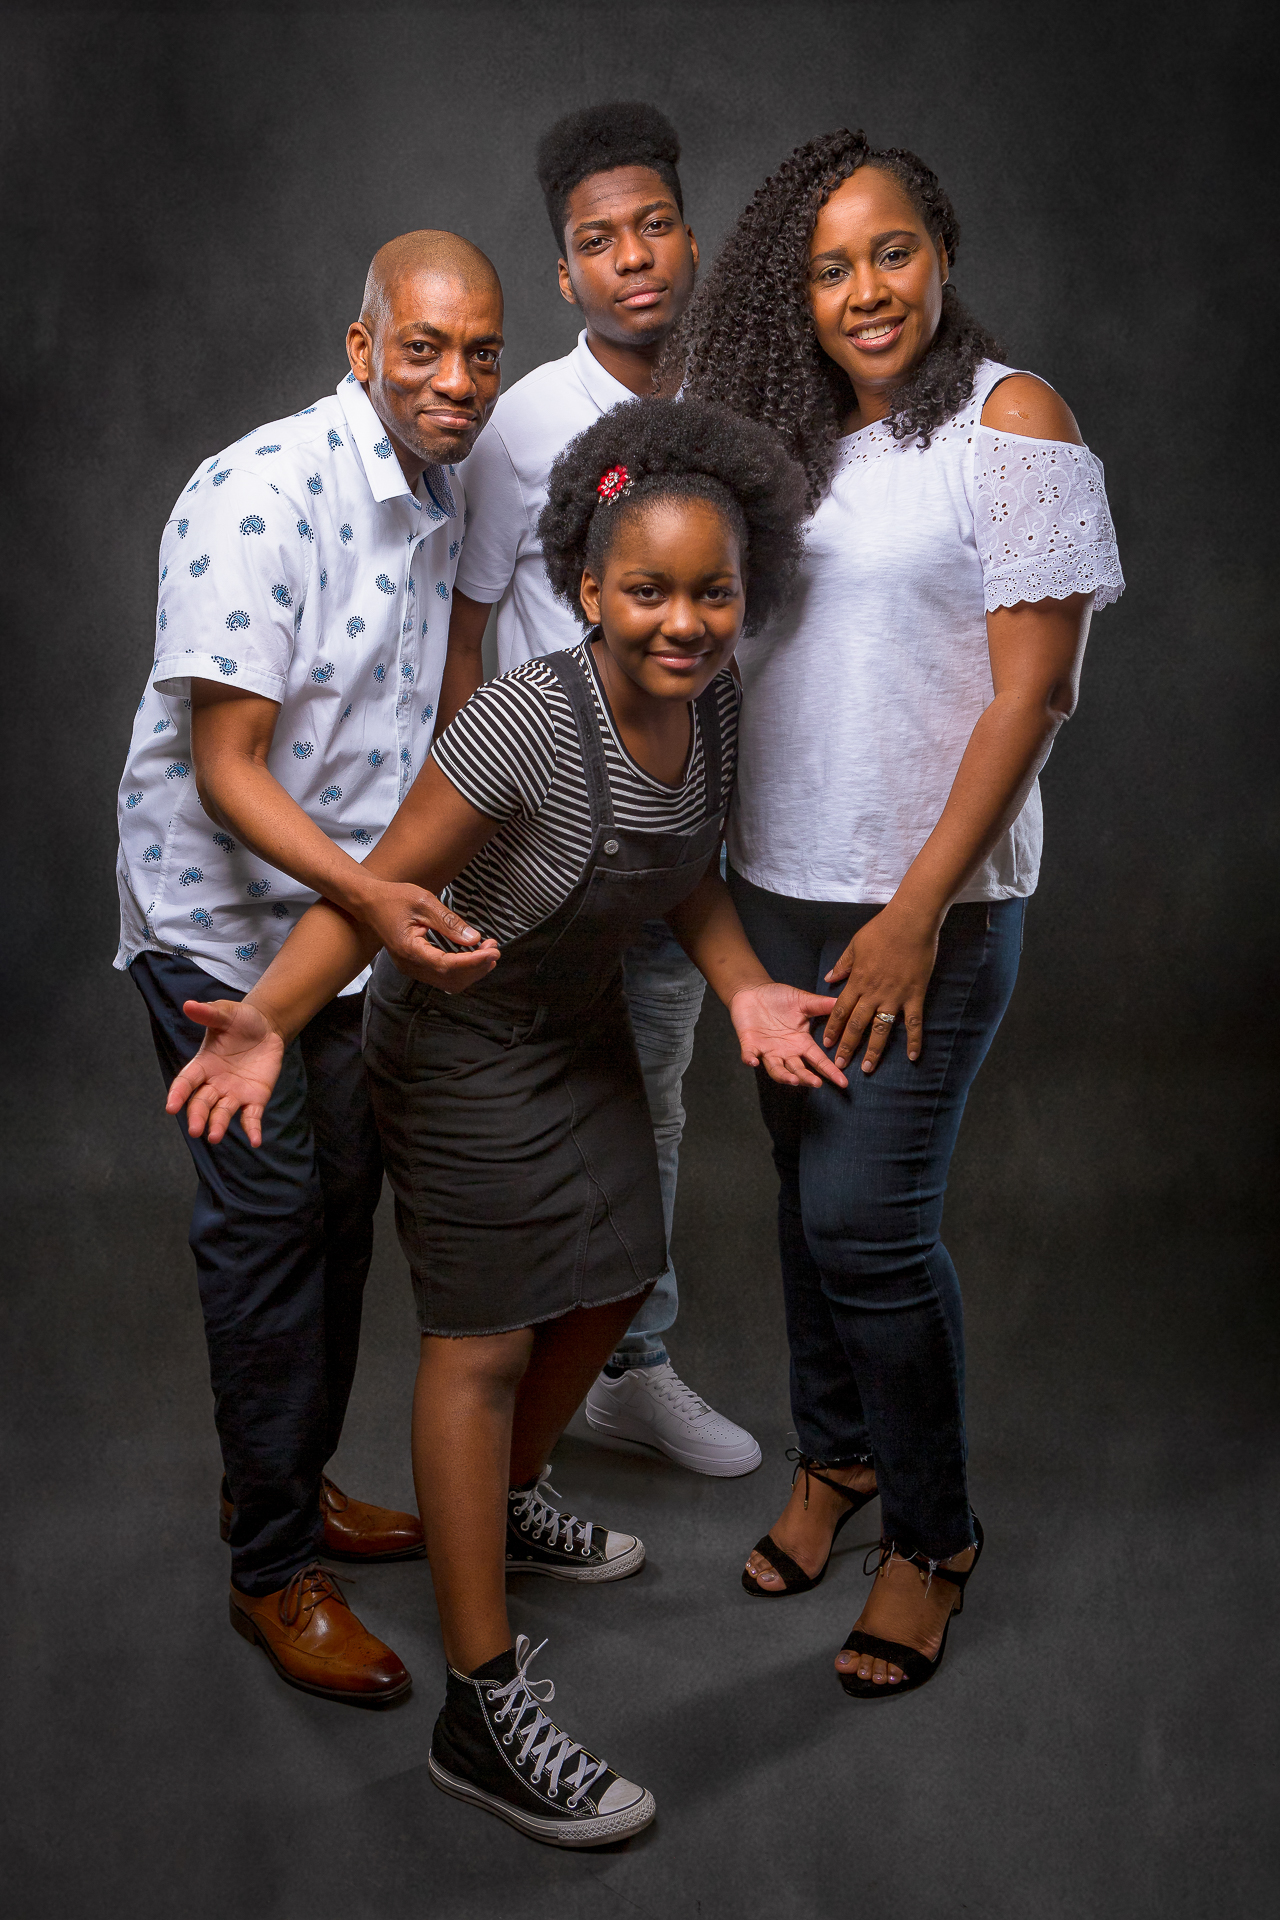 family-portrait-photography-brooklyn-nyc-elsimage01456